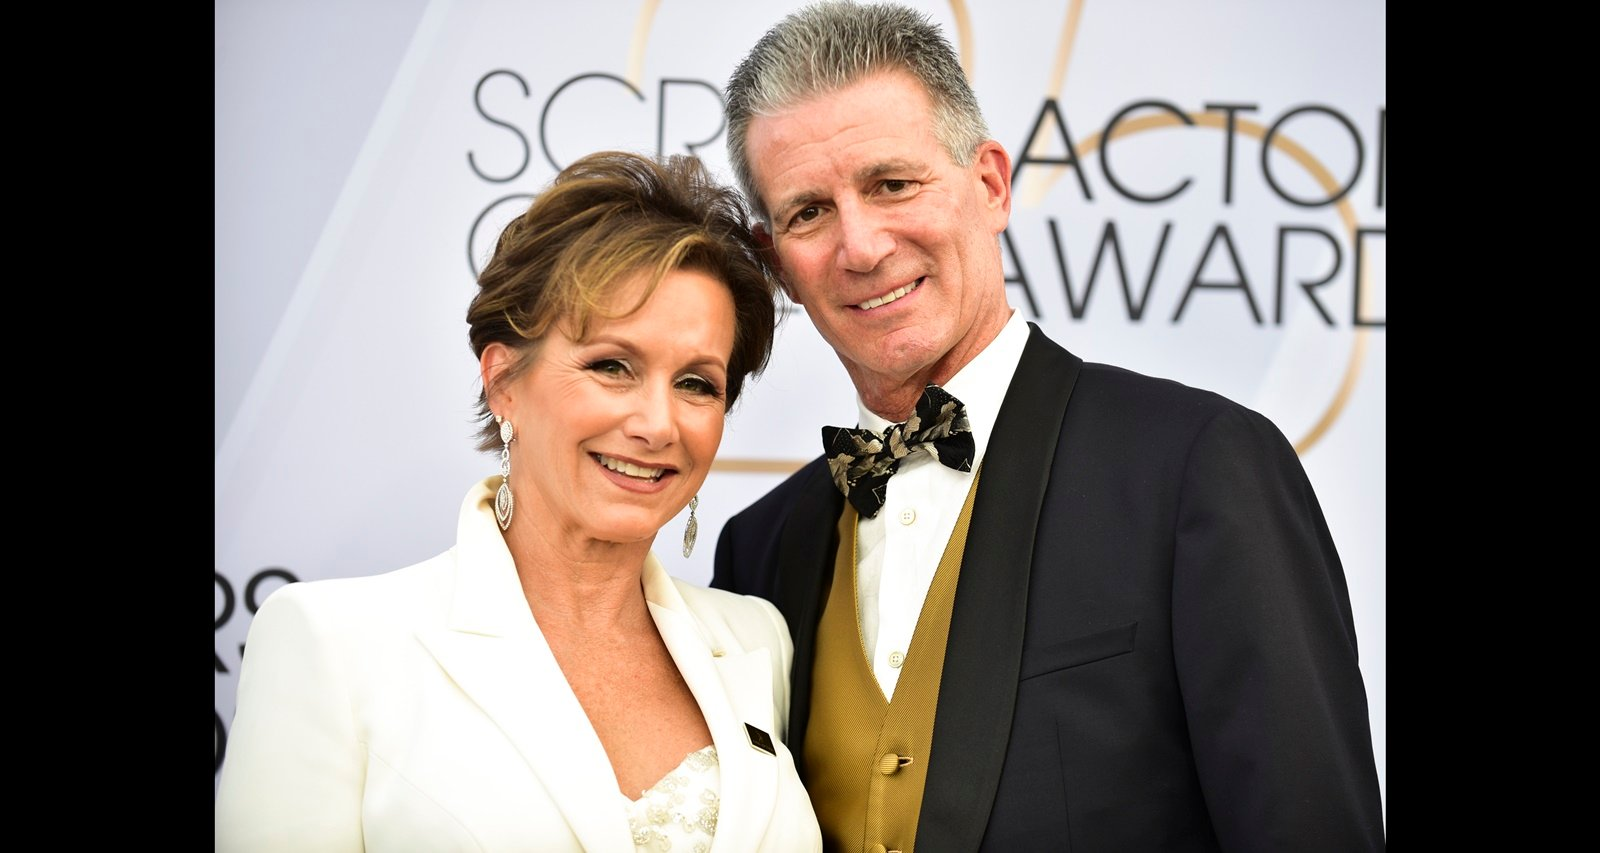 Who Is Gabrielle Carteris Married To? Charles Isaacs Wiki, Age, Facts About The Stockbroker